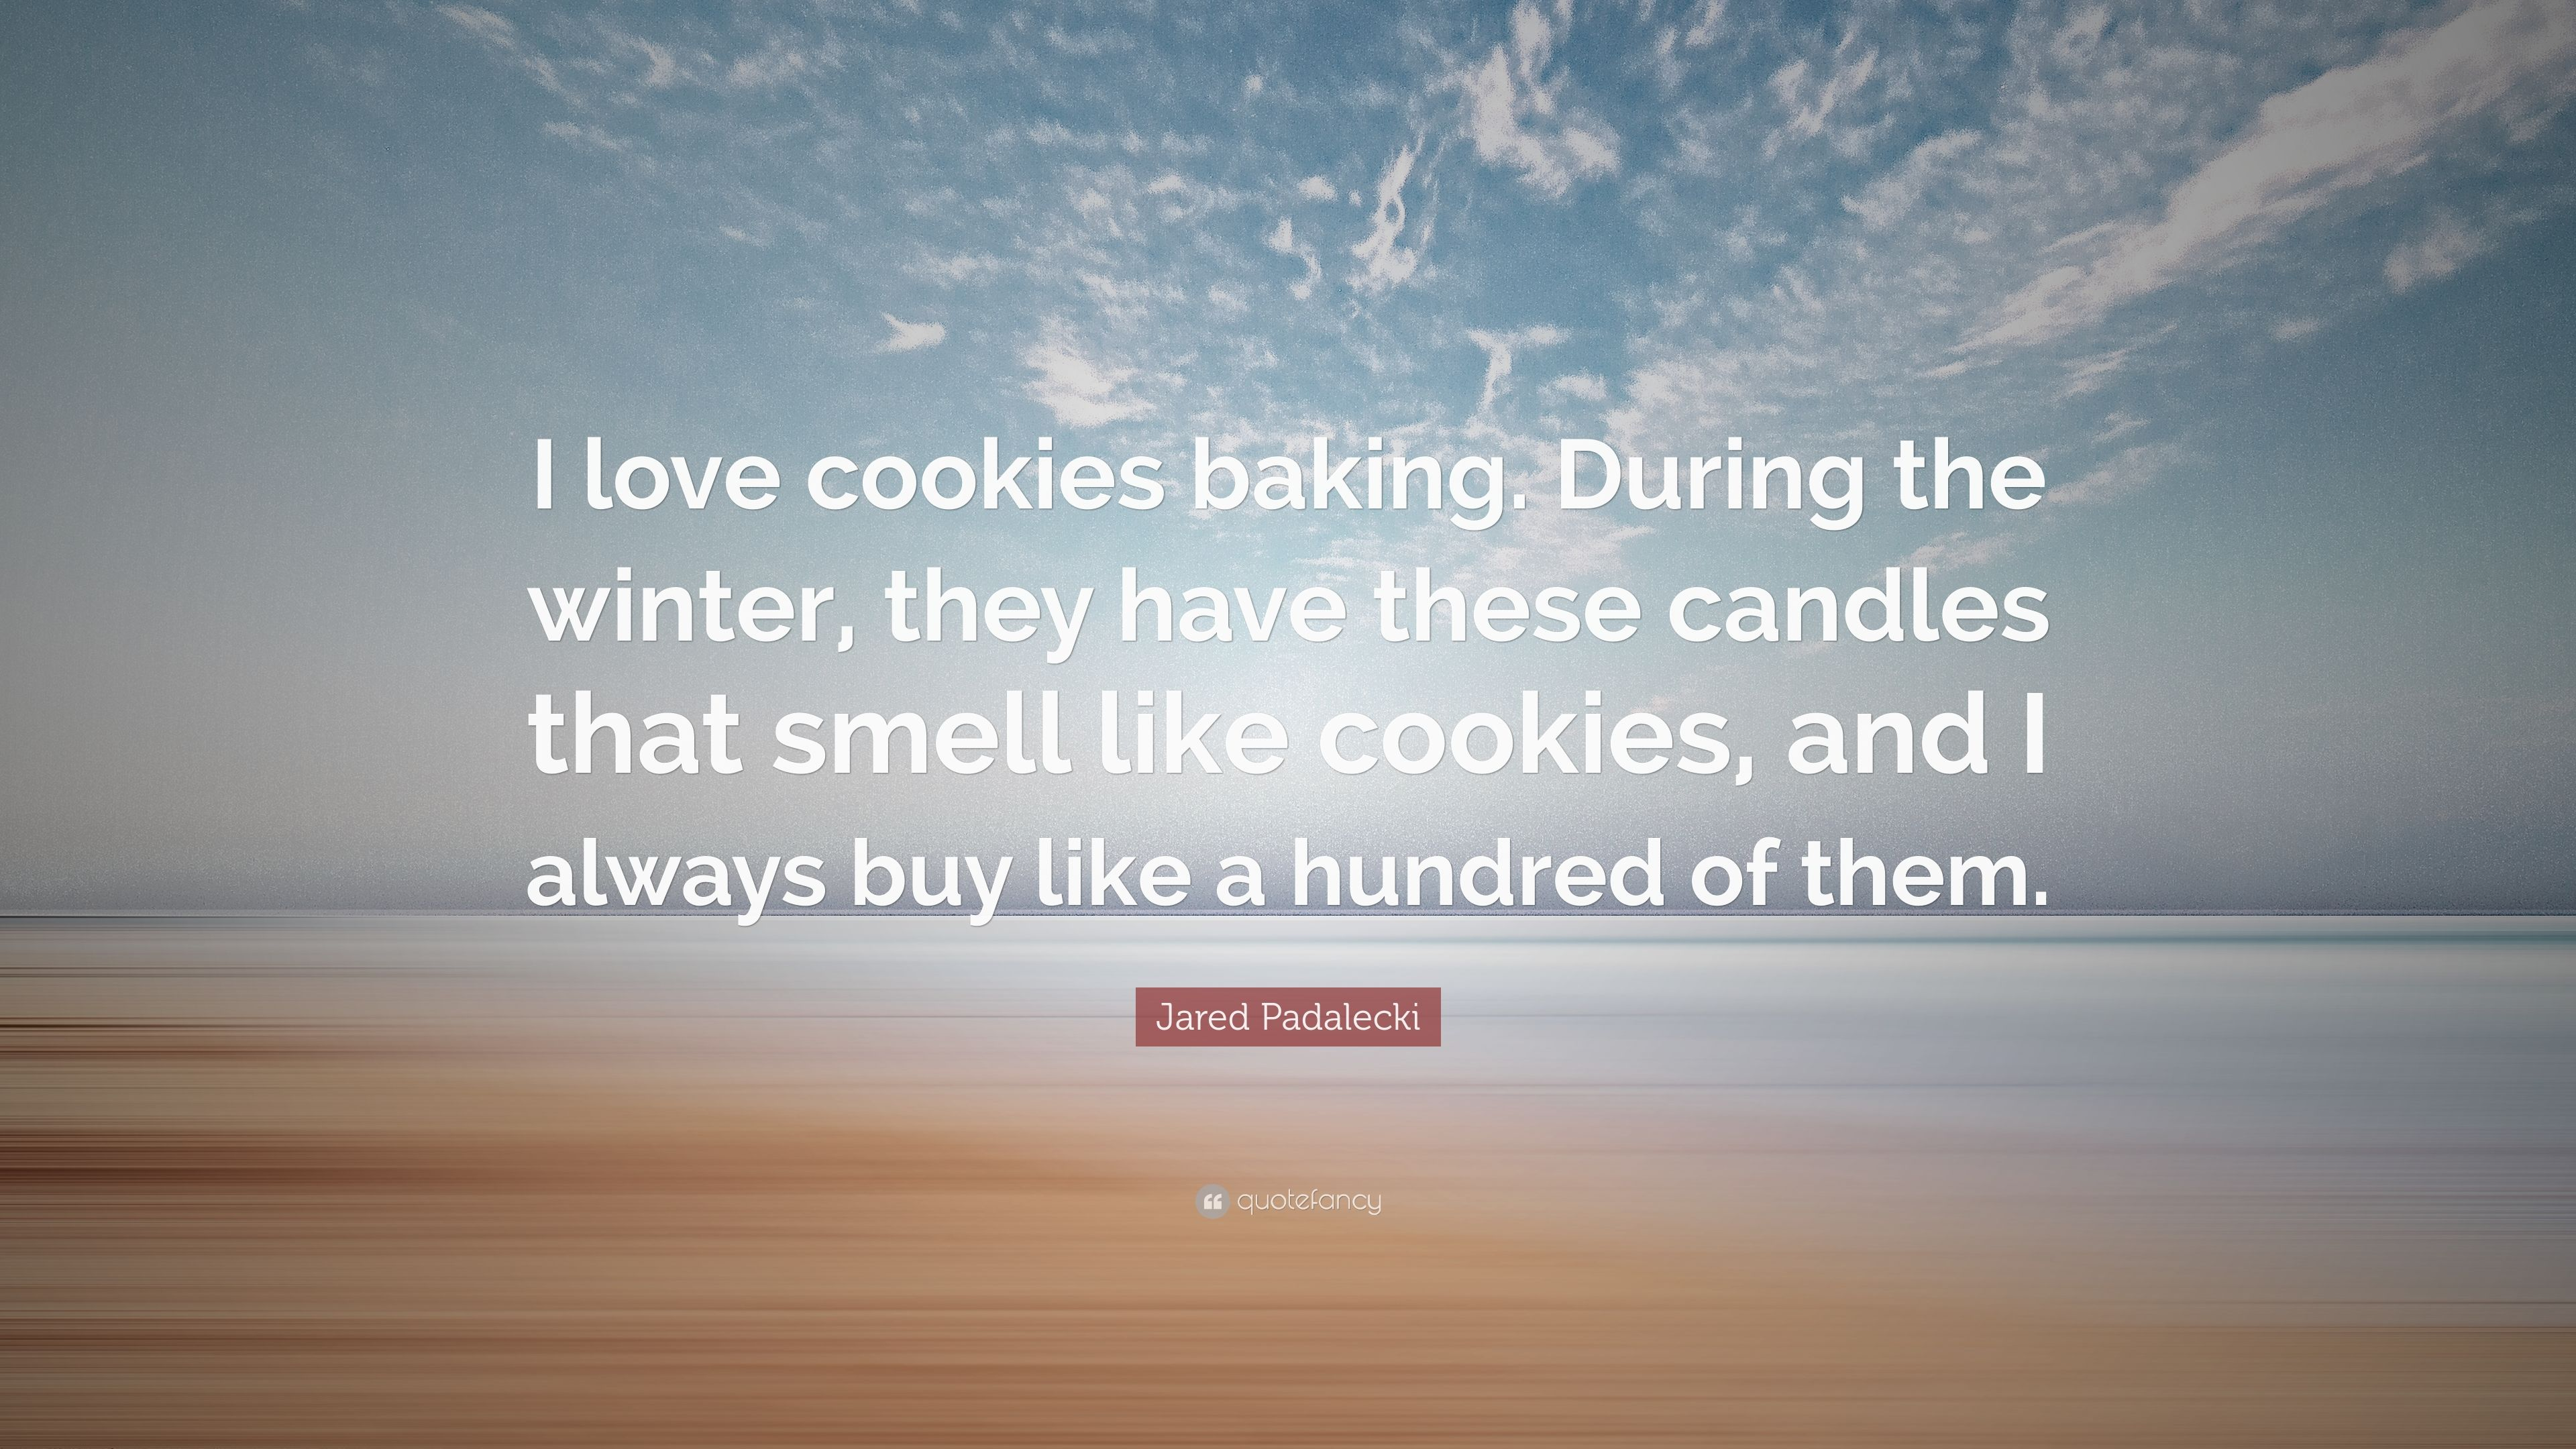 Jared padalecki quotes - Jared Padalecki Quote I Love Cookies Baking During The Winter They Have